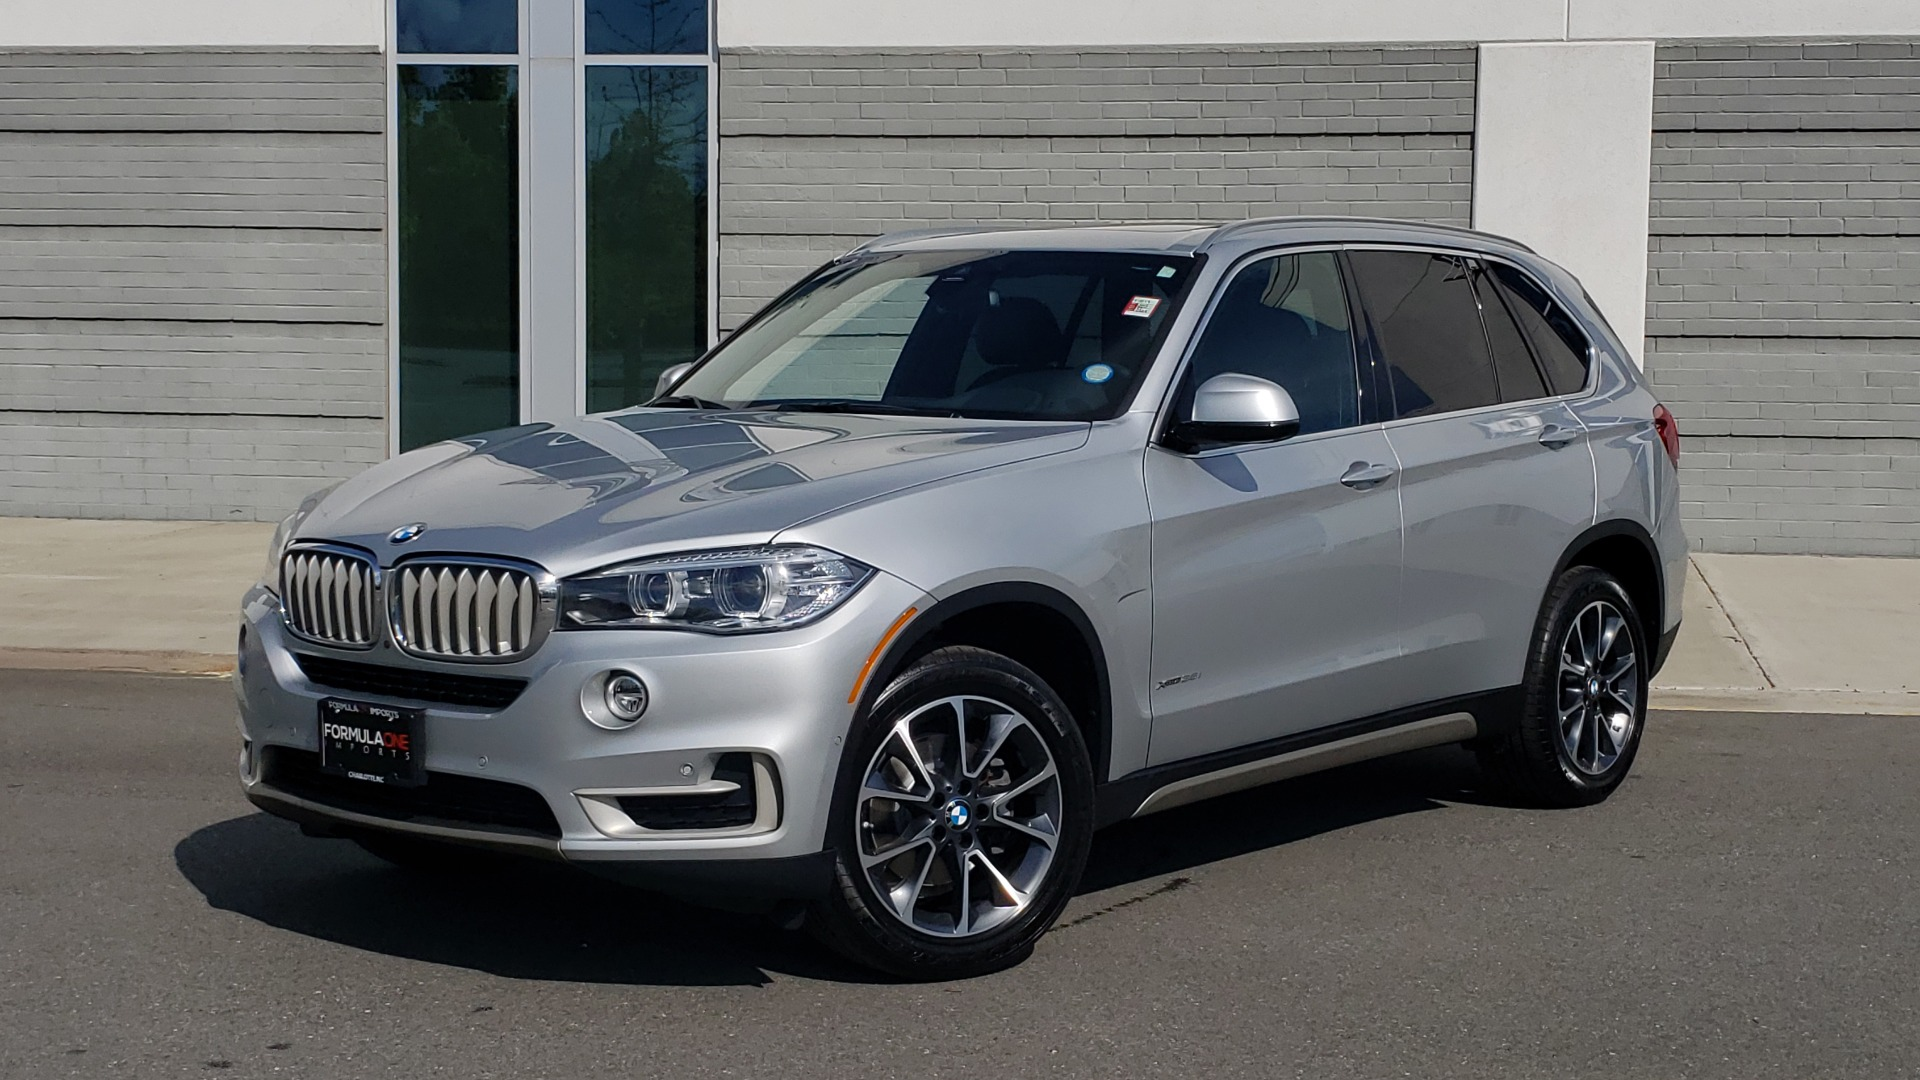 Used 2018 BMW X5 XDRIVE35I PREMIUM / NAV / PANO-ROOF / DRIVER ASST / REARVIEW for sale Sold at Formula Imports in Charlotte NC 28227 1